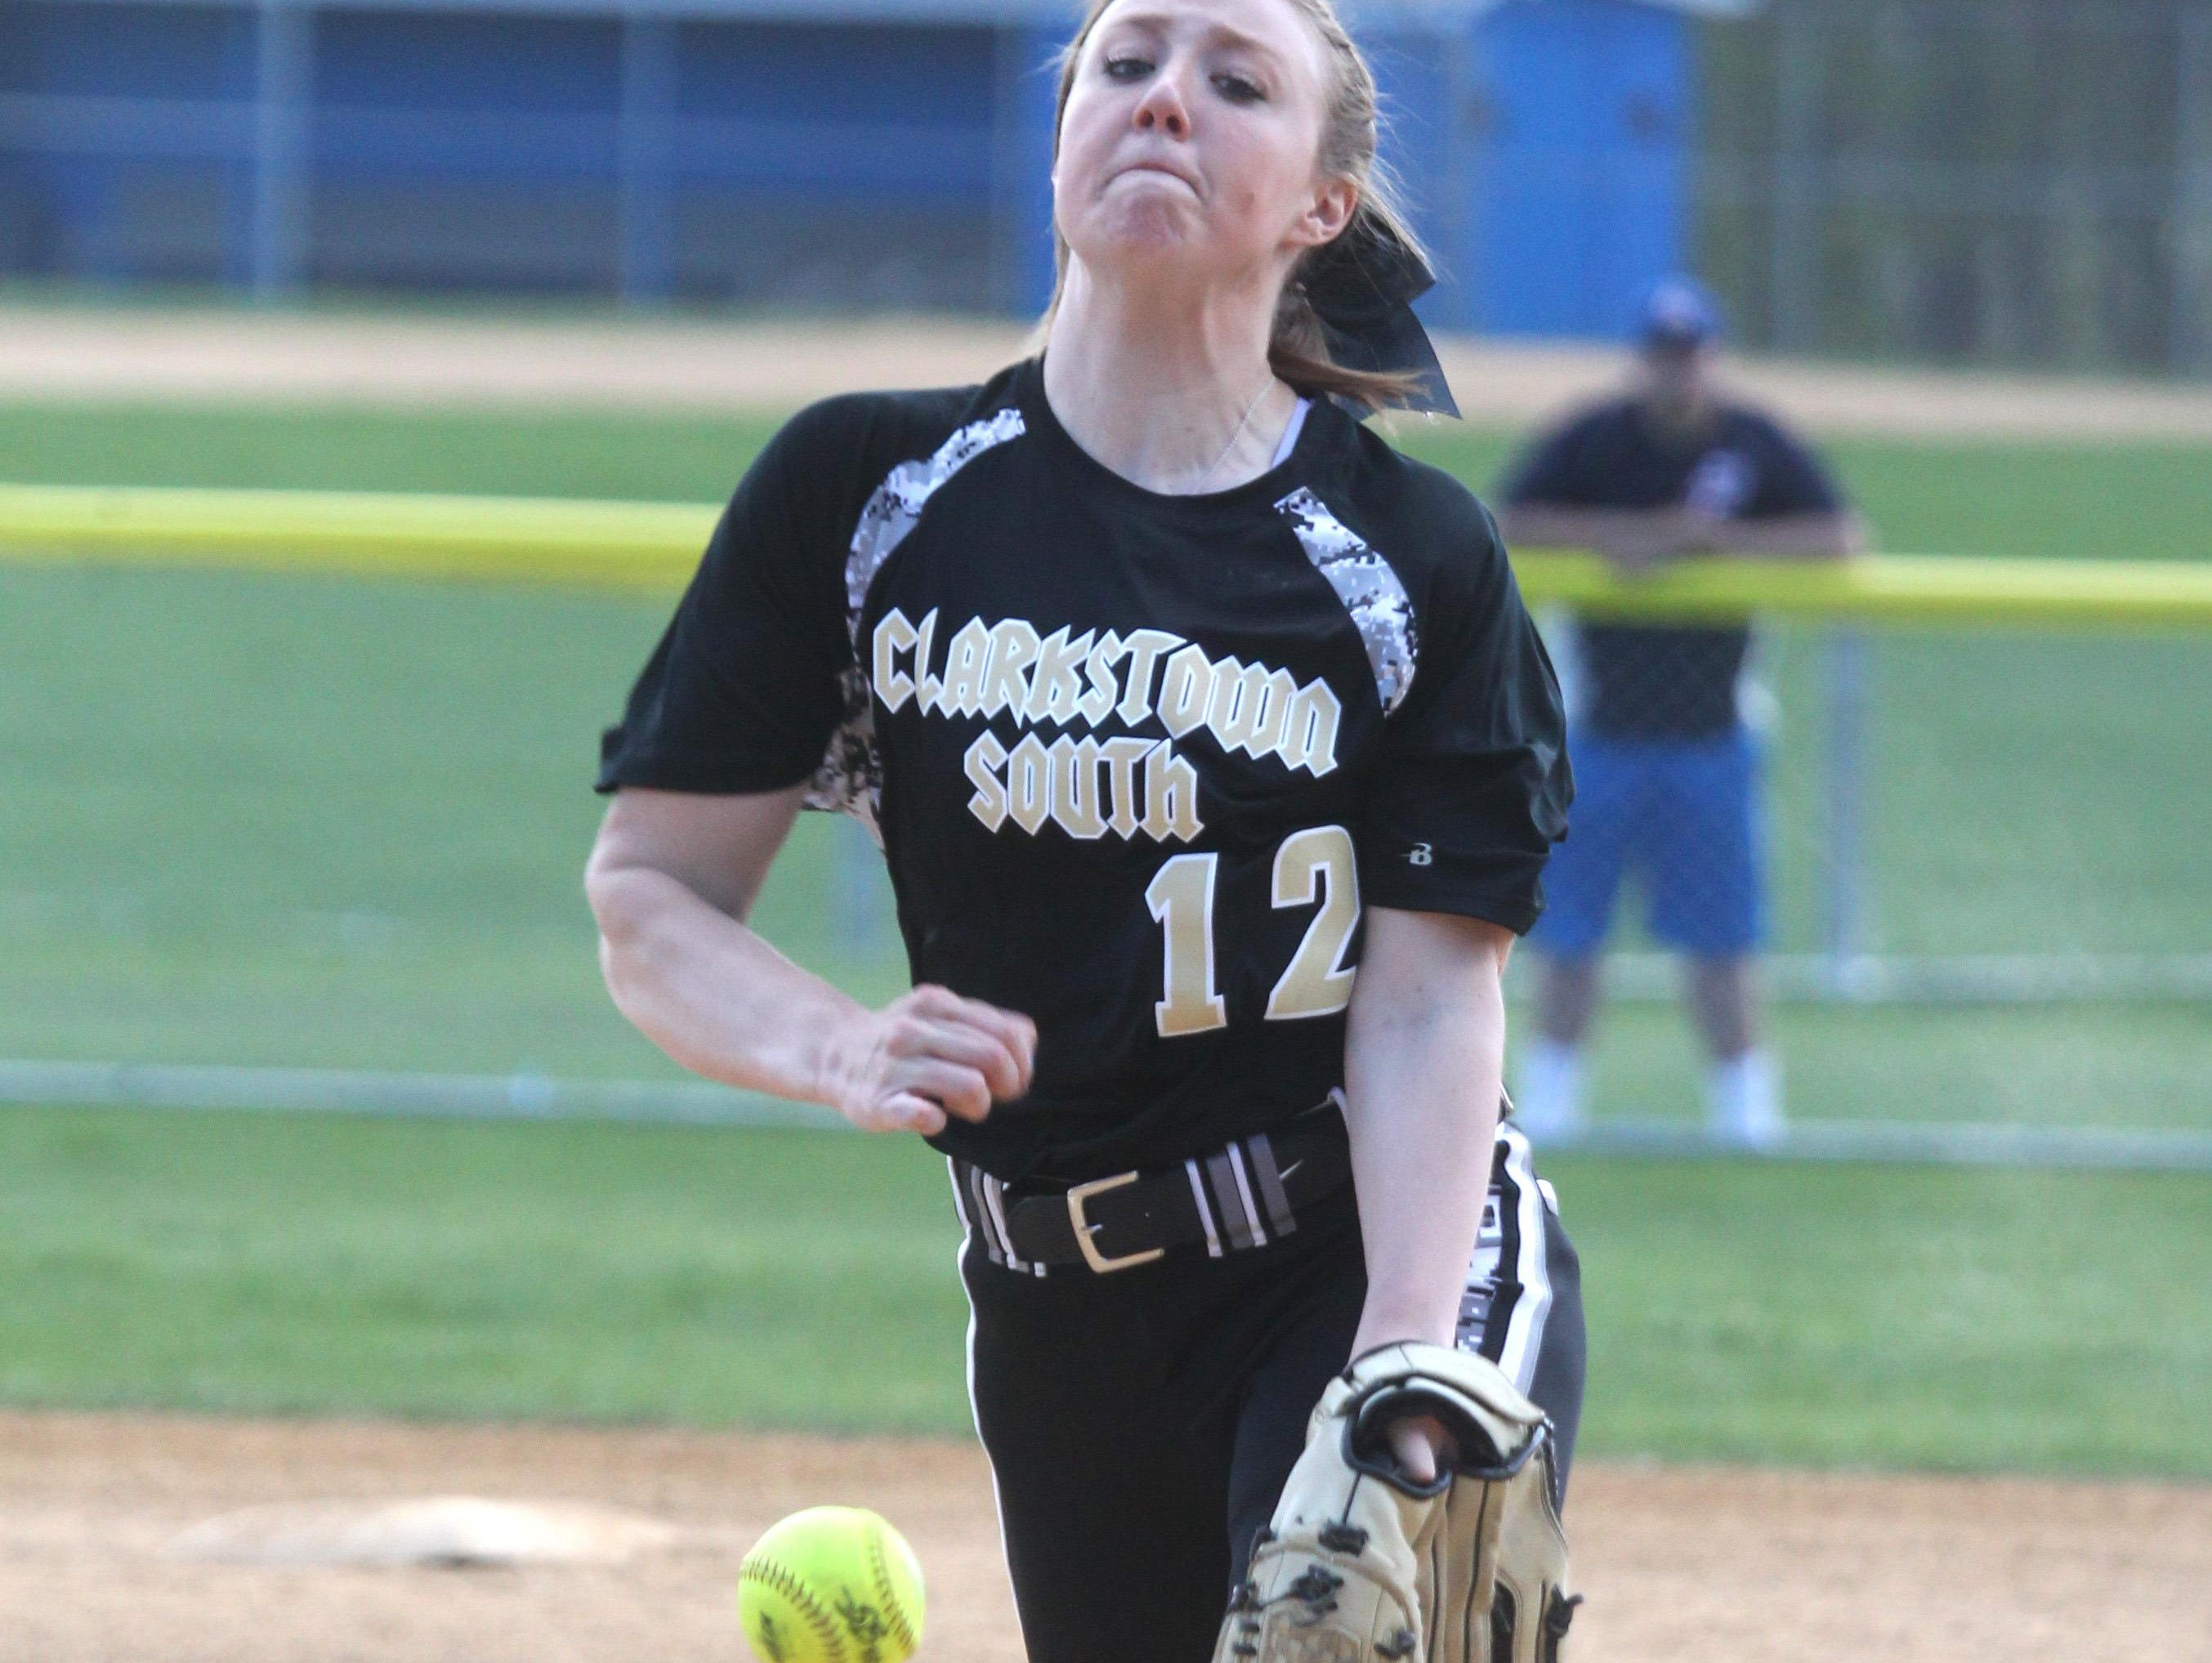 Clarkstown South's Briana Keaveney delivers a pitch during a game at Pearl River May 2, 2015.